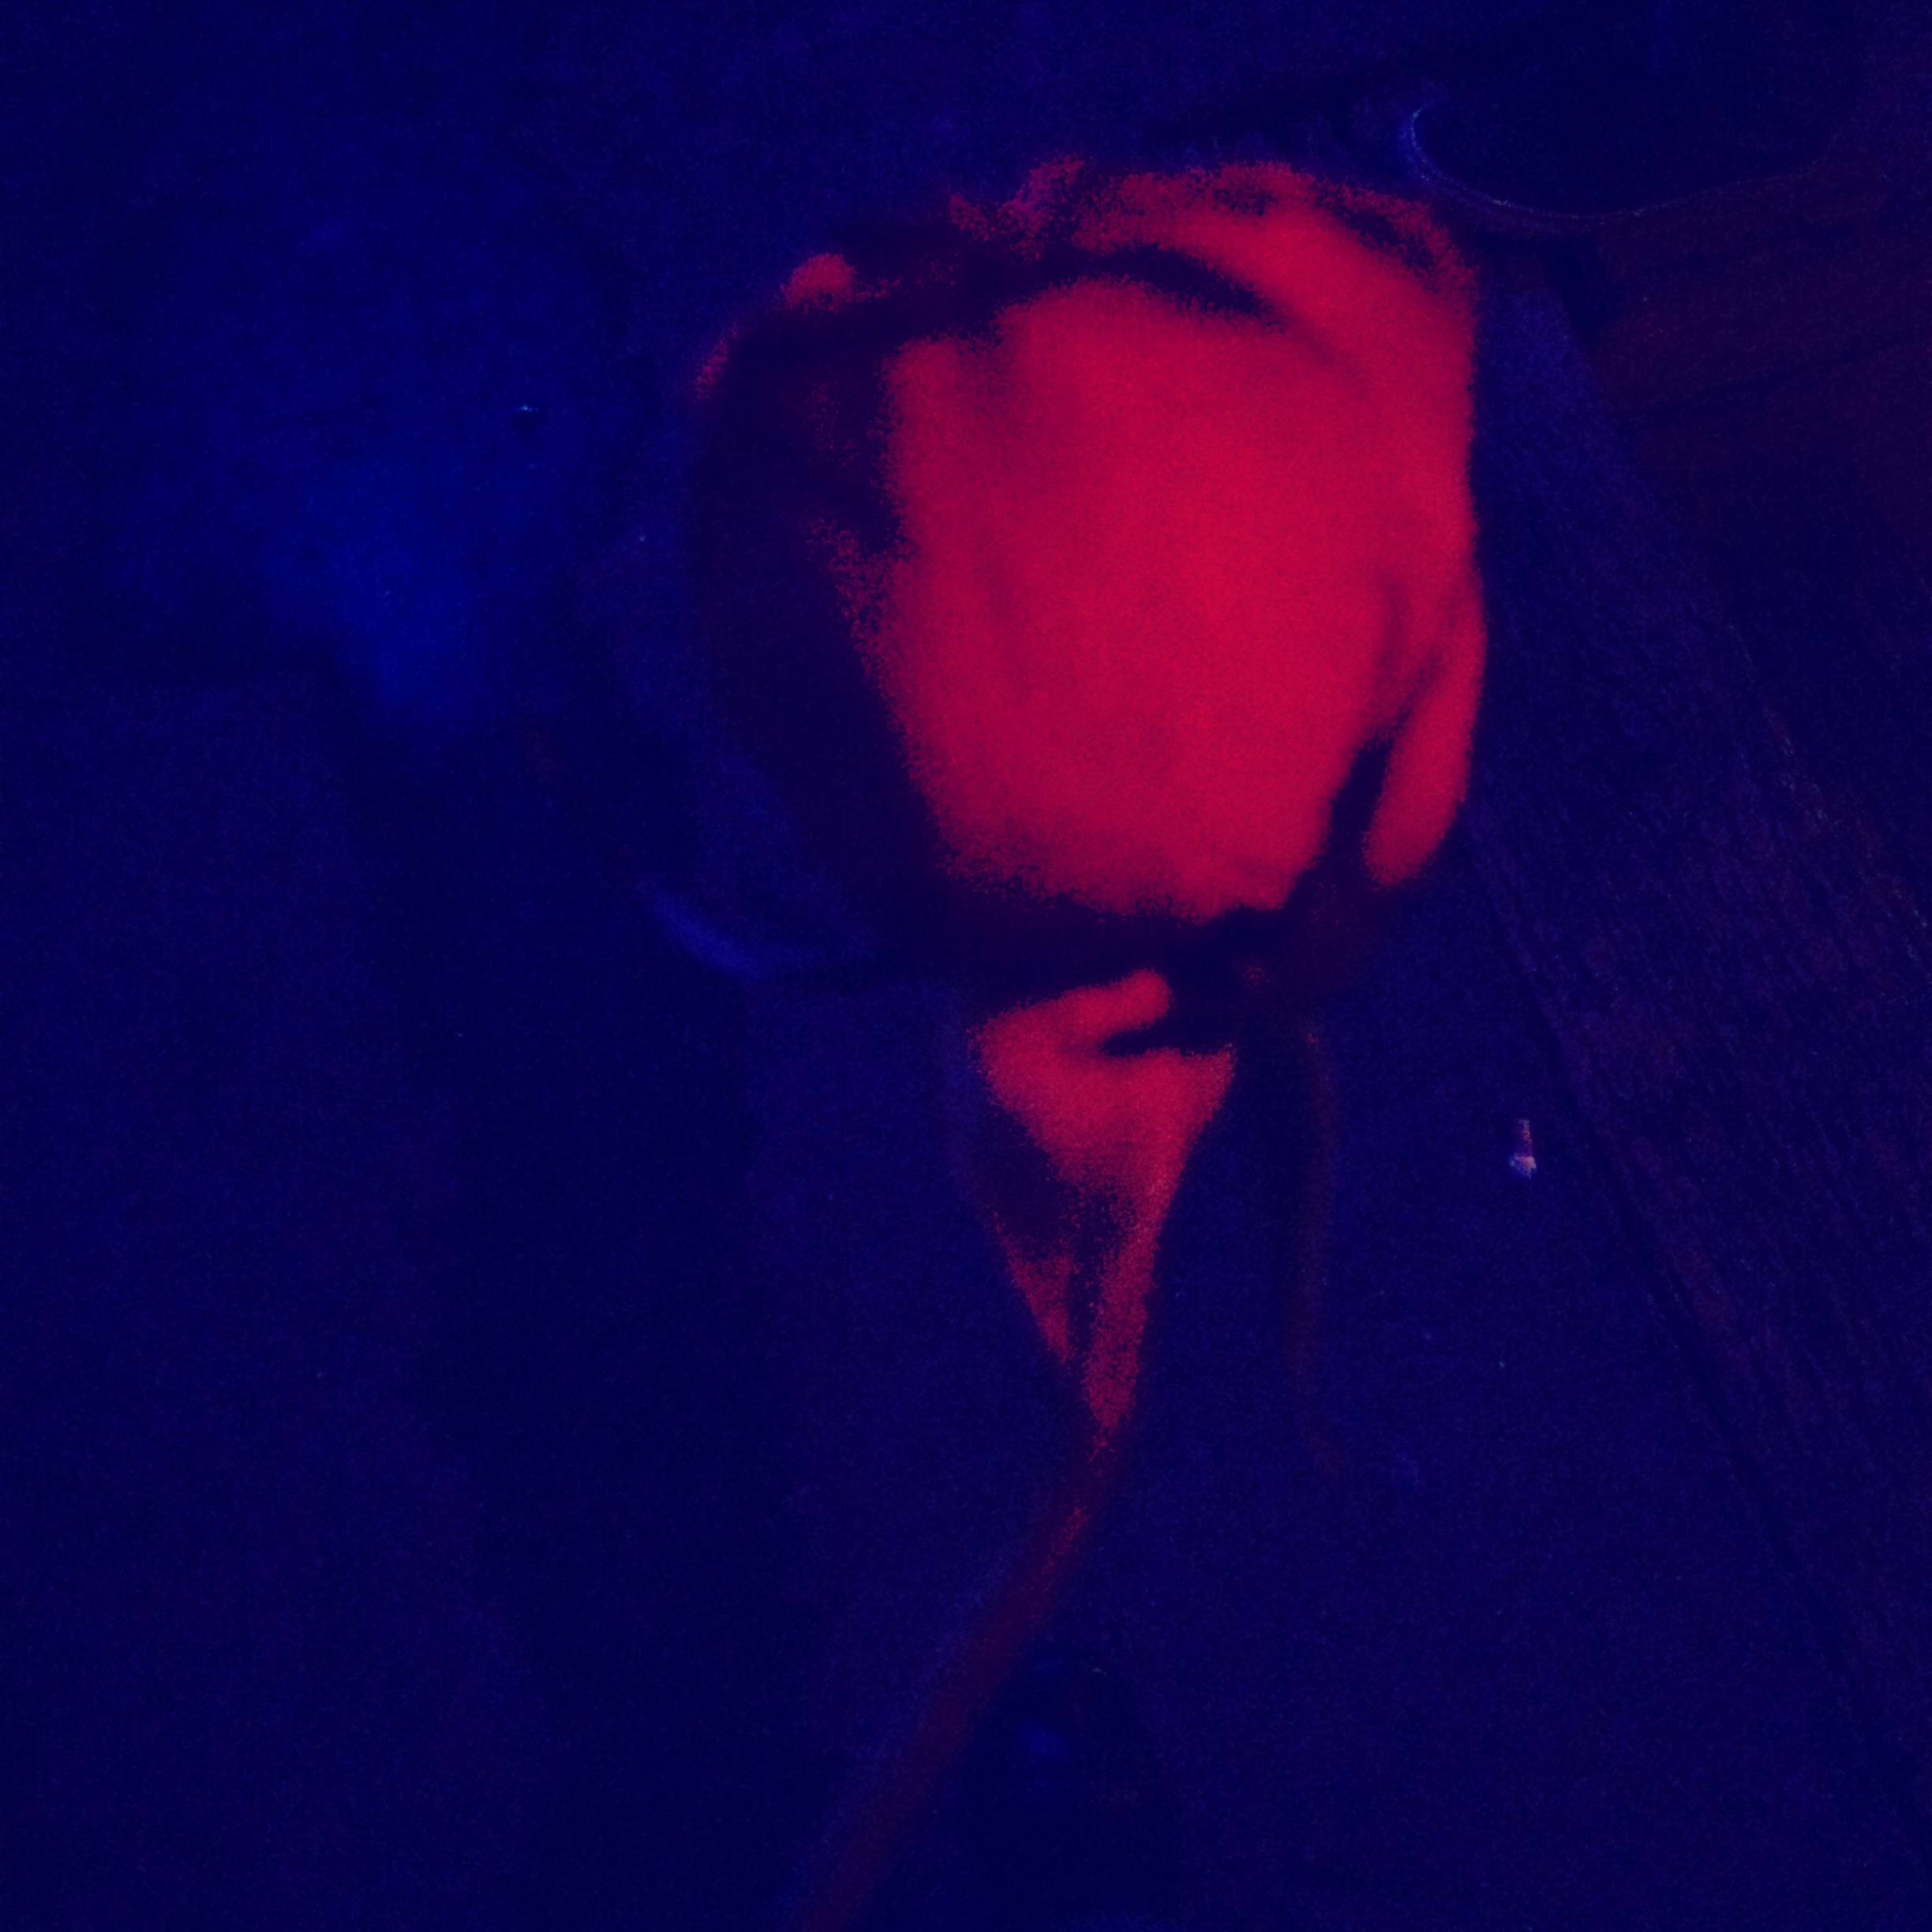 Someone named Peyton gave me a rose after I played. I love roses! Hopefully that becomes a regular thing because I could get used to free flowers.